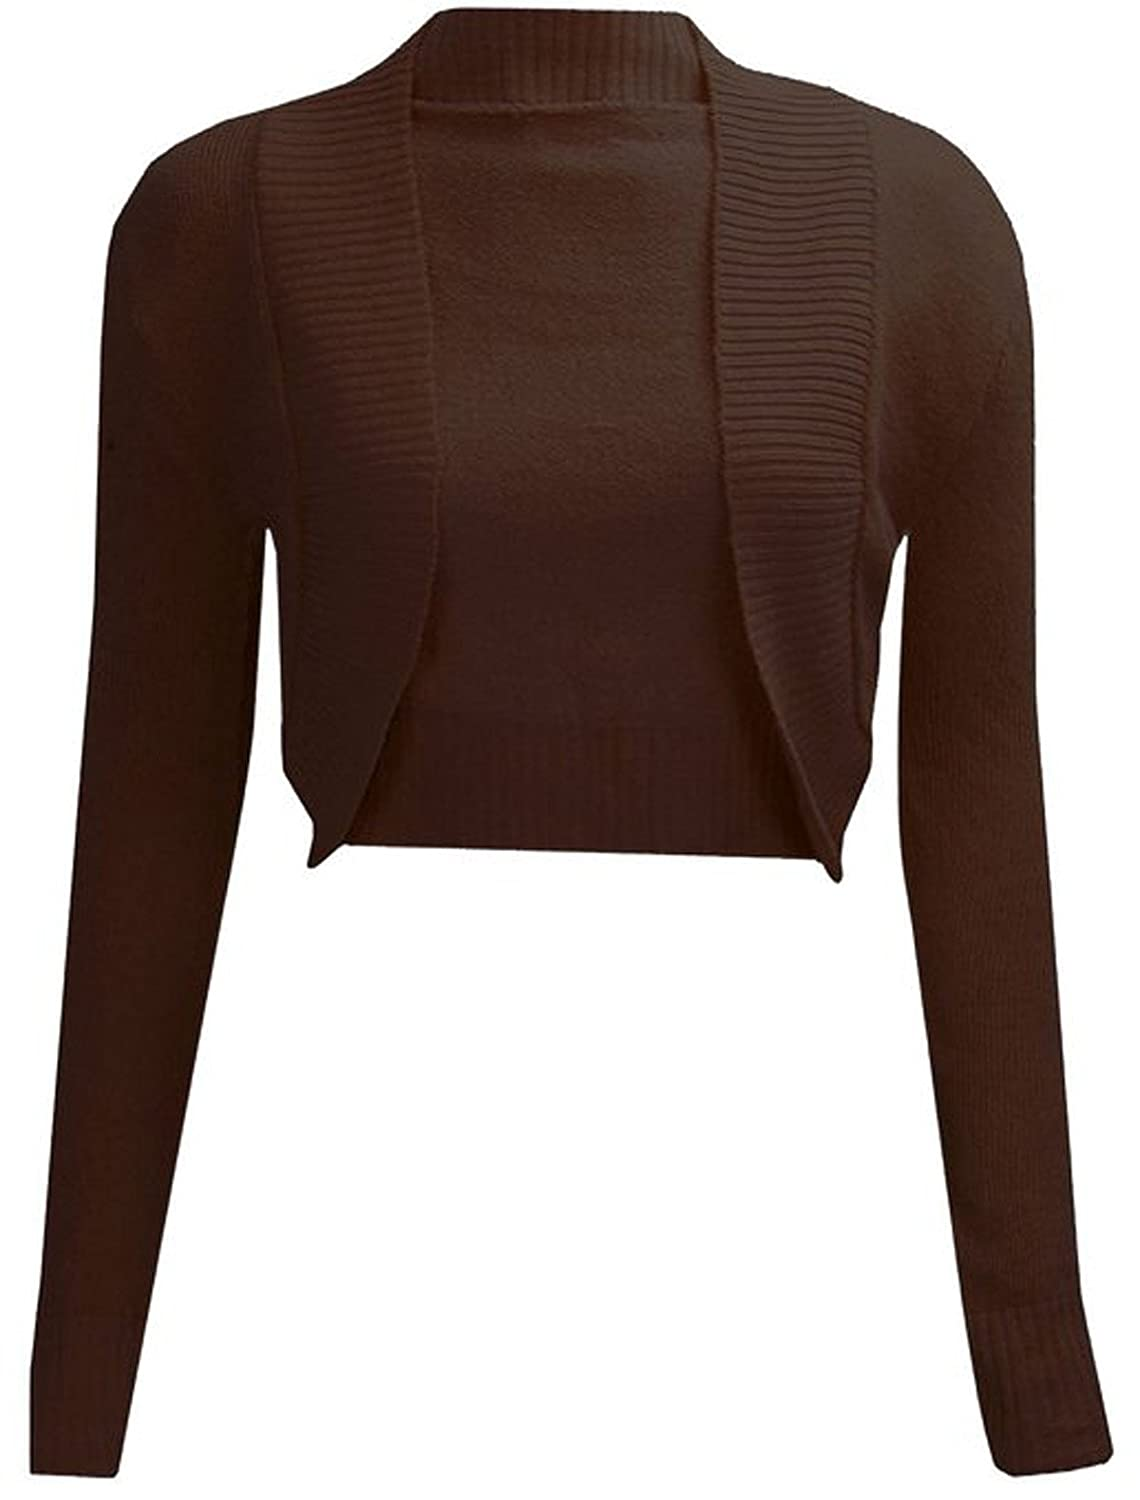 FashionMark Womens Long Sleeves Knitted Bolero Shrug Cardigan Top